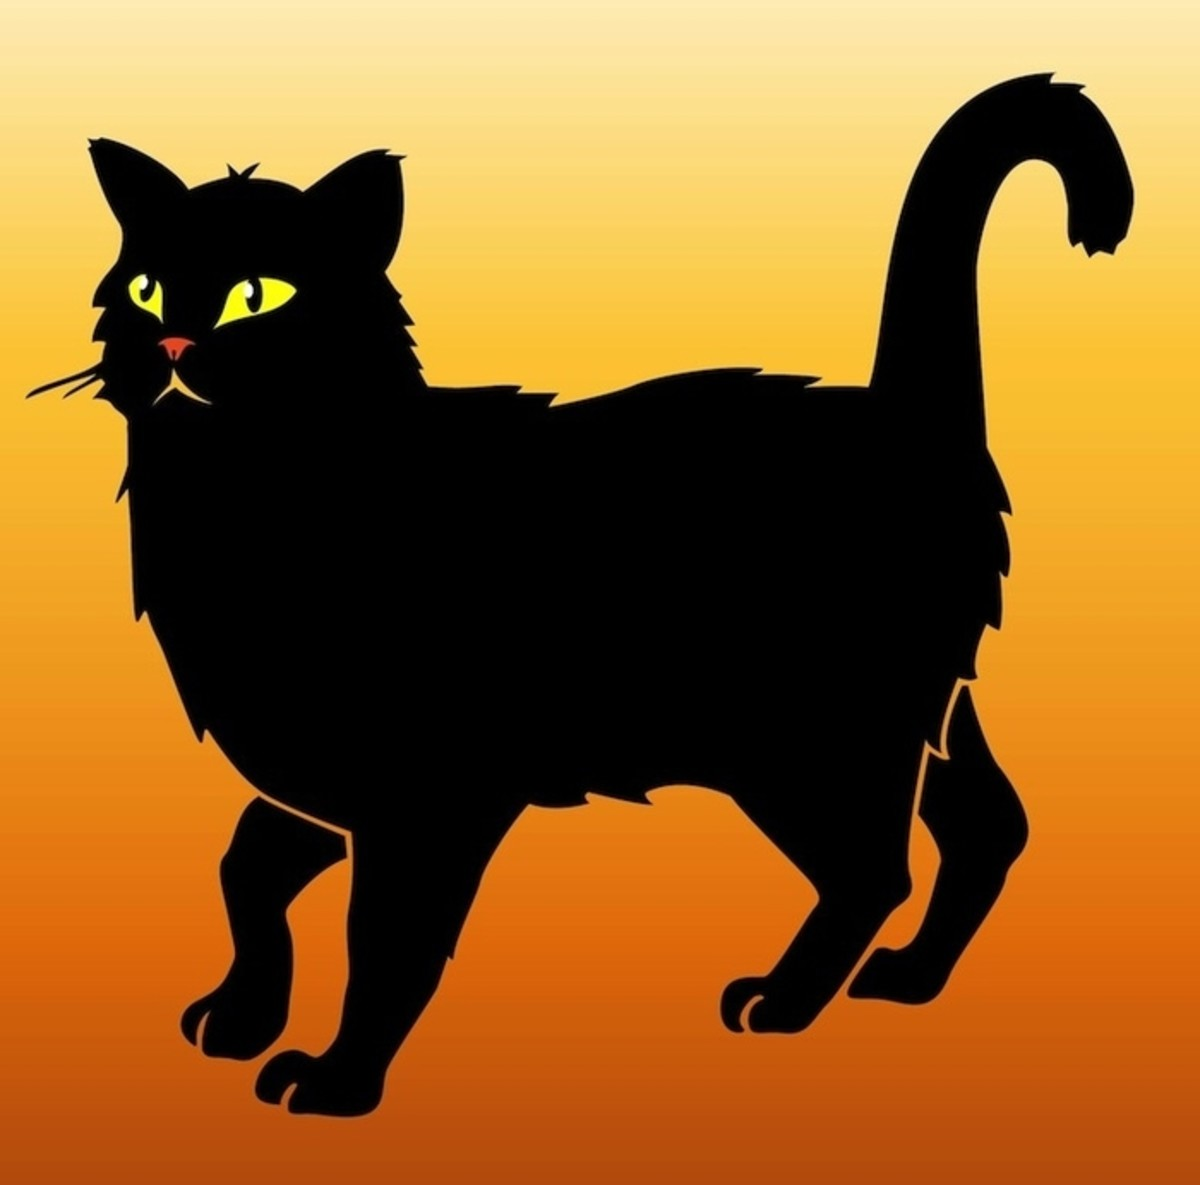 Halloween Cat on Orange Background